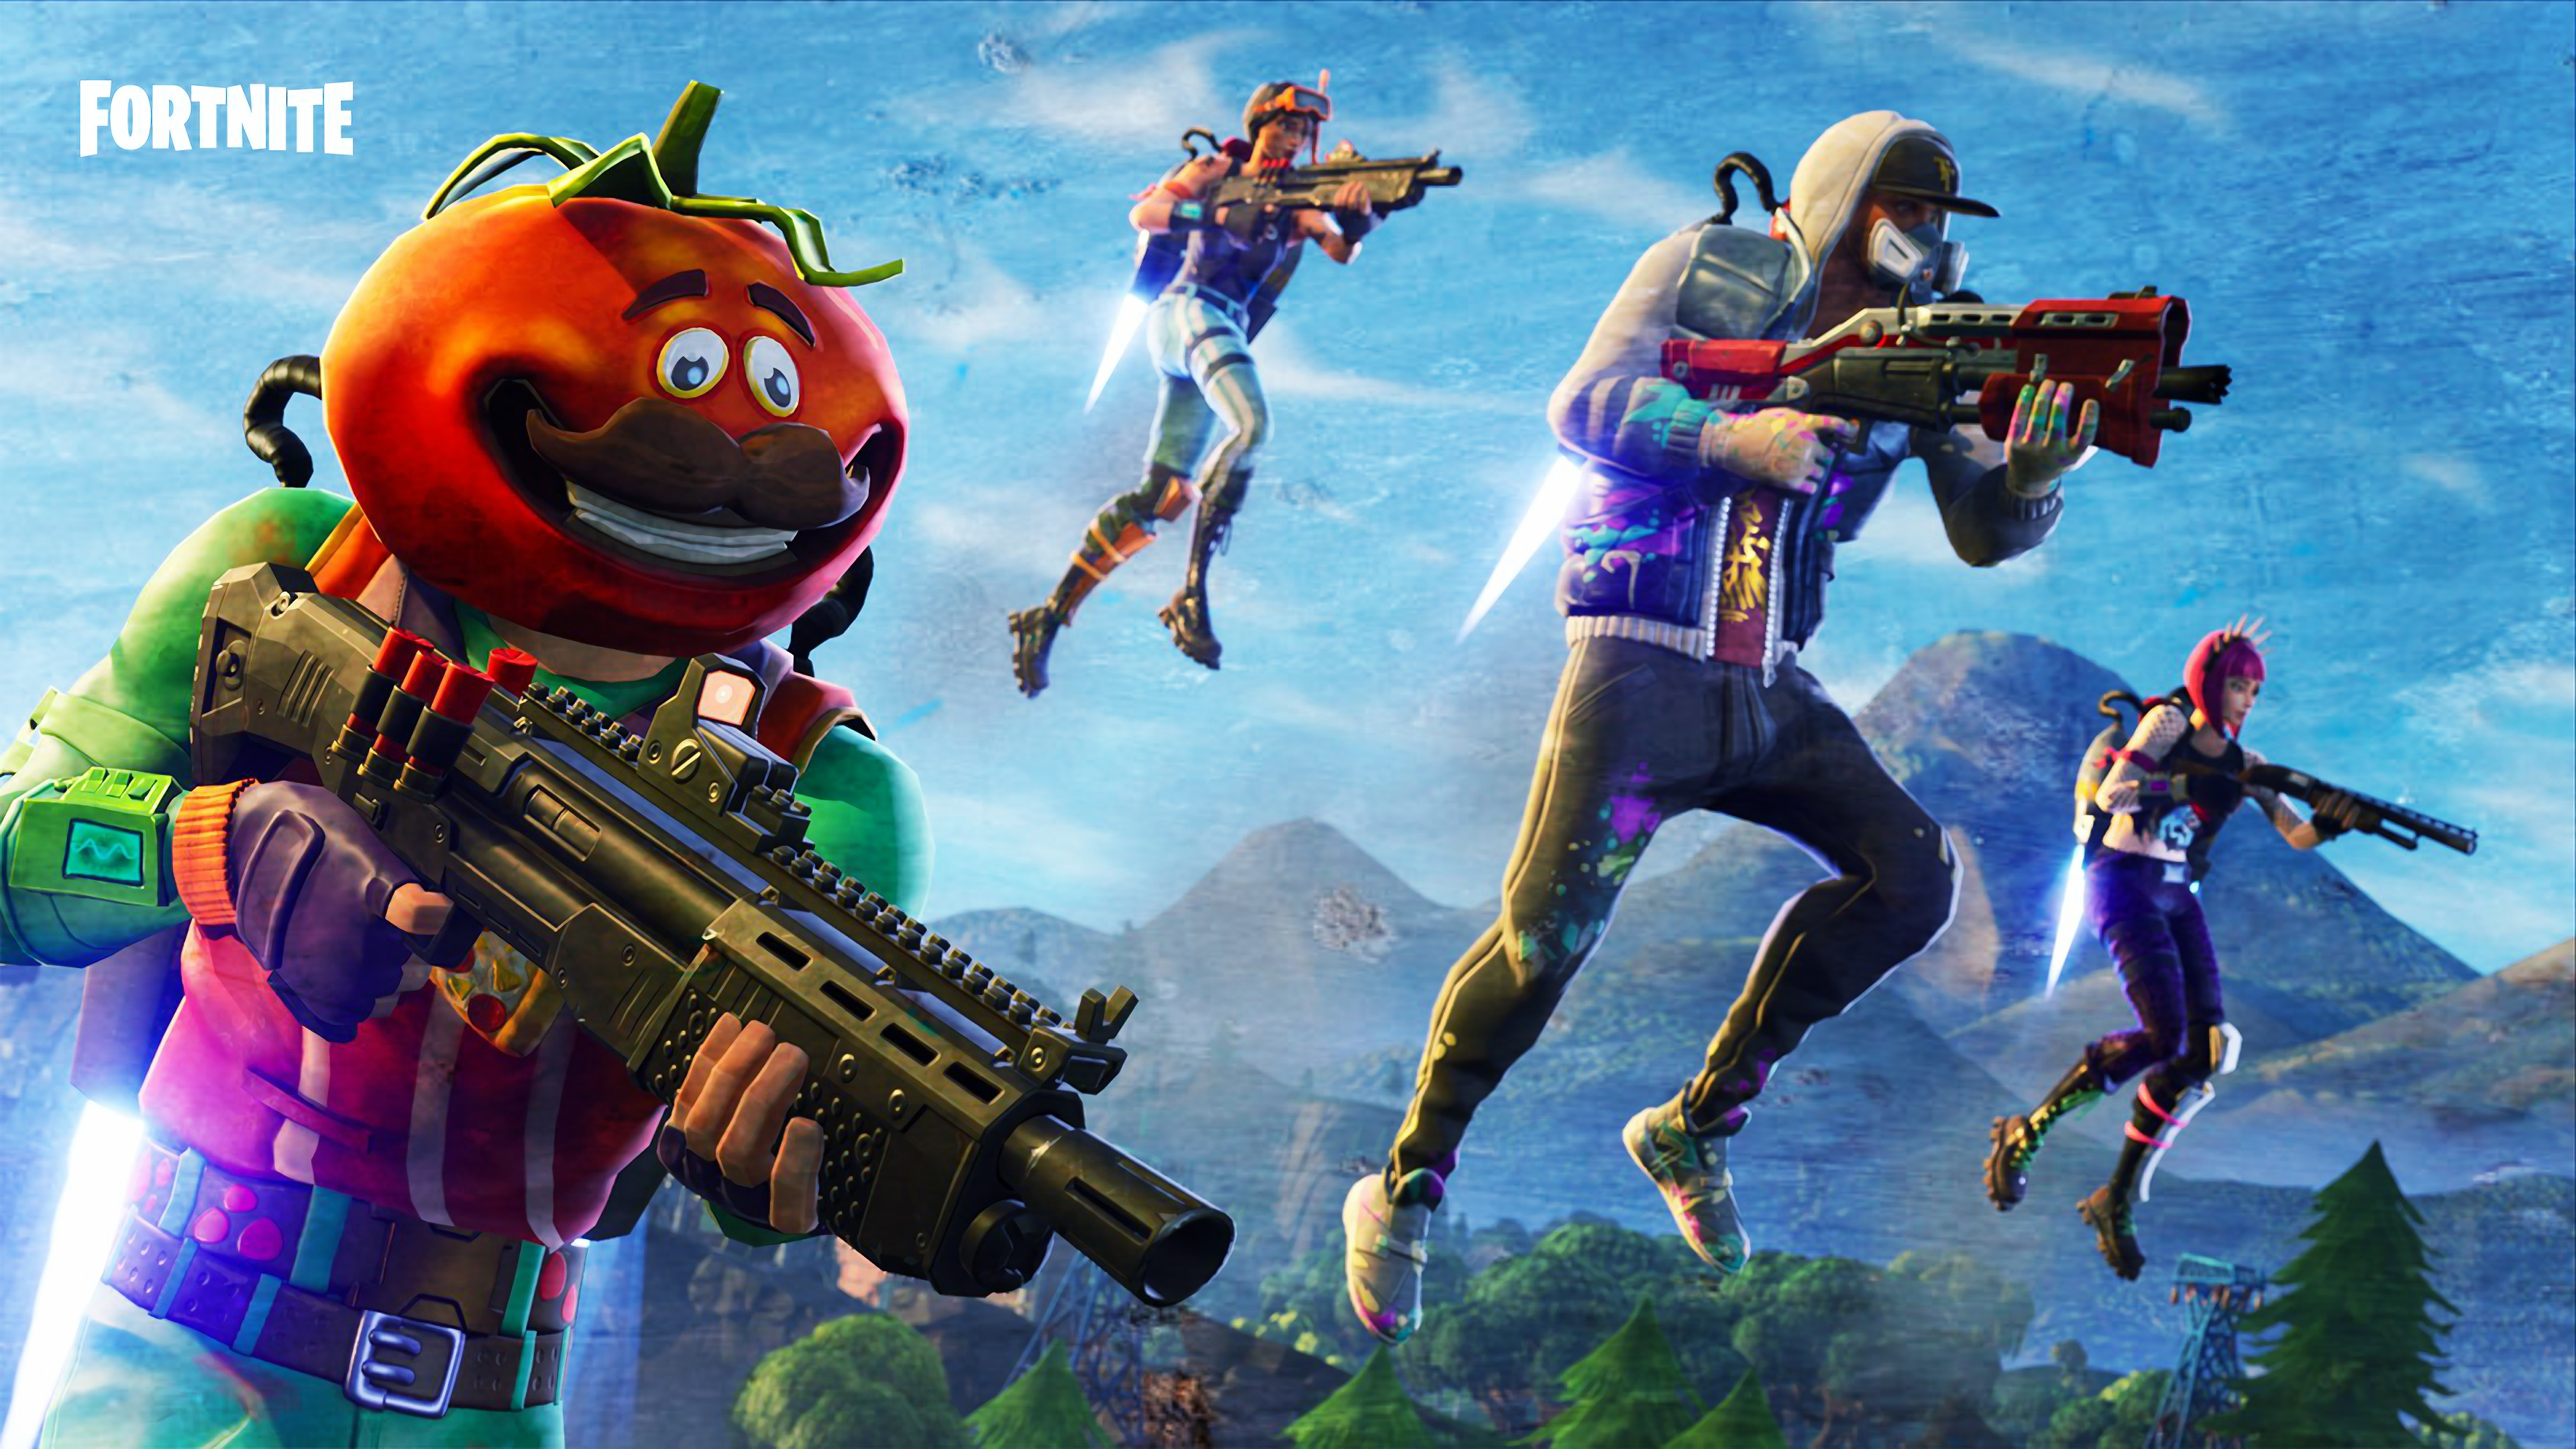 Desktop Wallpaper 2018 Video Game Fortnite Art Hd: 2560x1700 Fortnite 2018 Game Chromebook Pixel HD 4k